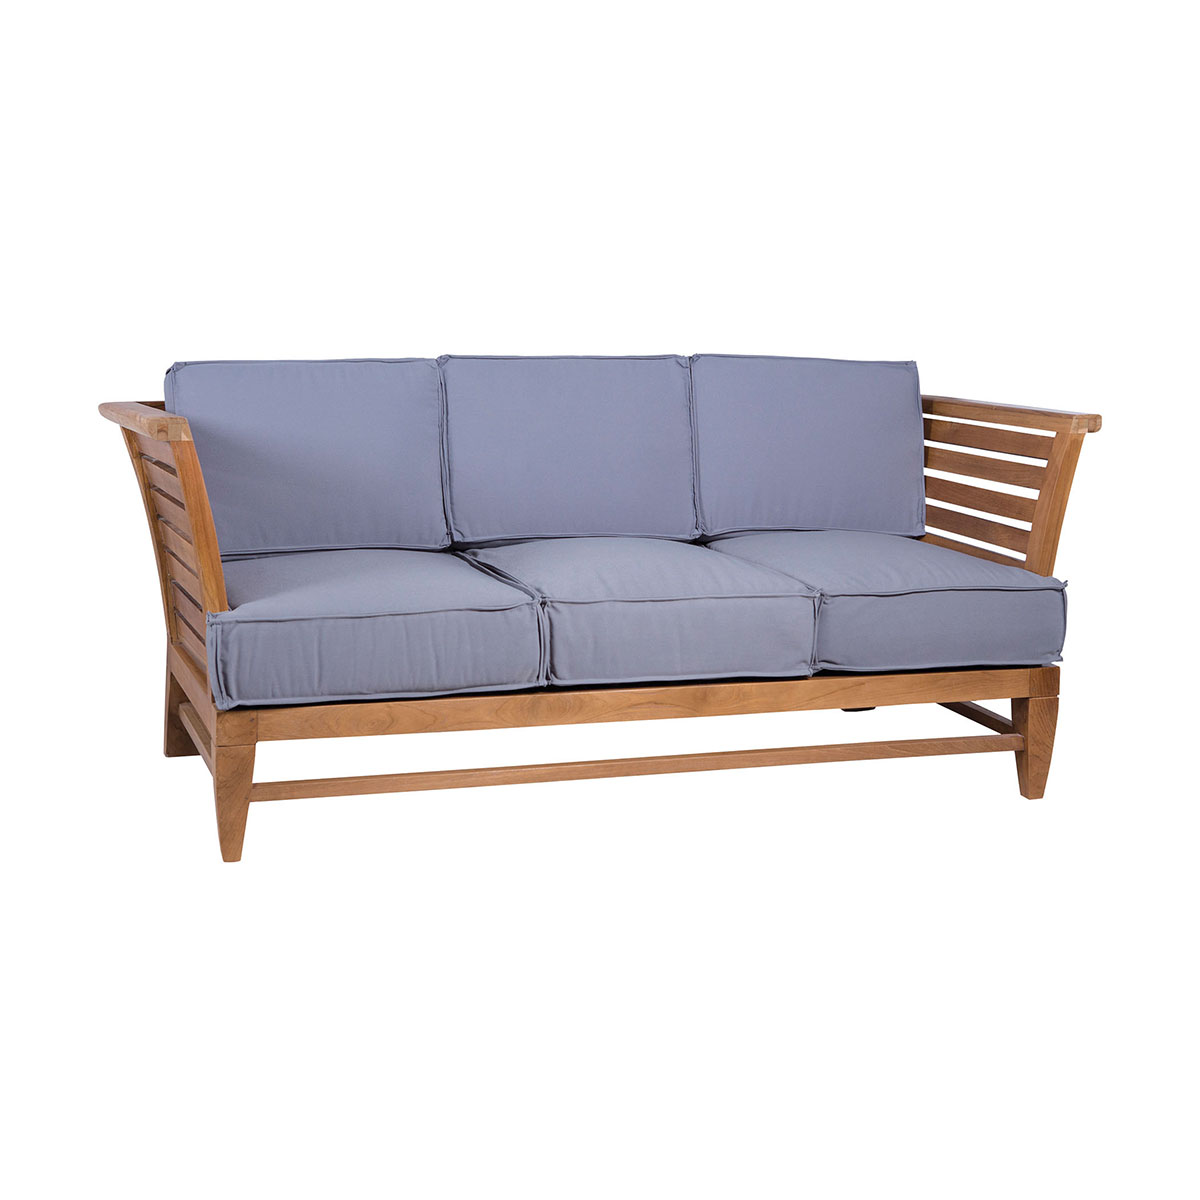 Galveston Pier Sofa 6517503ET | ELK Home